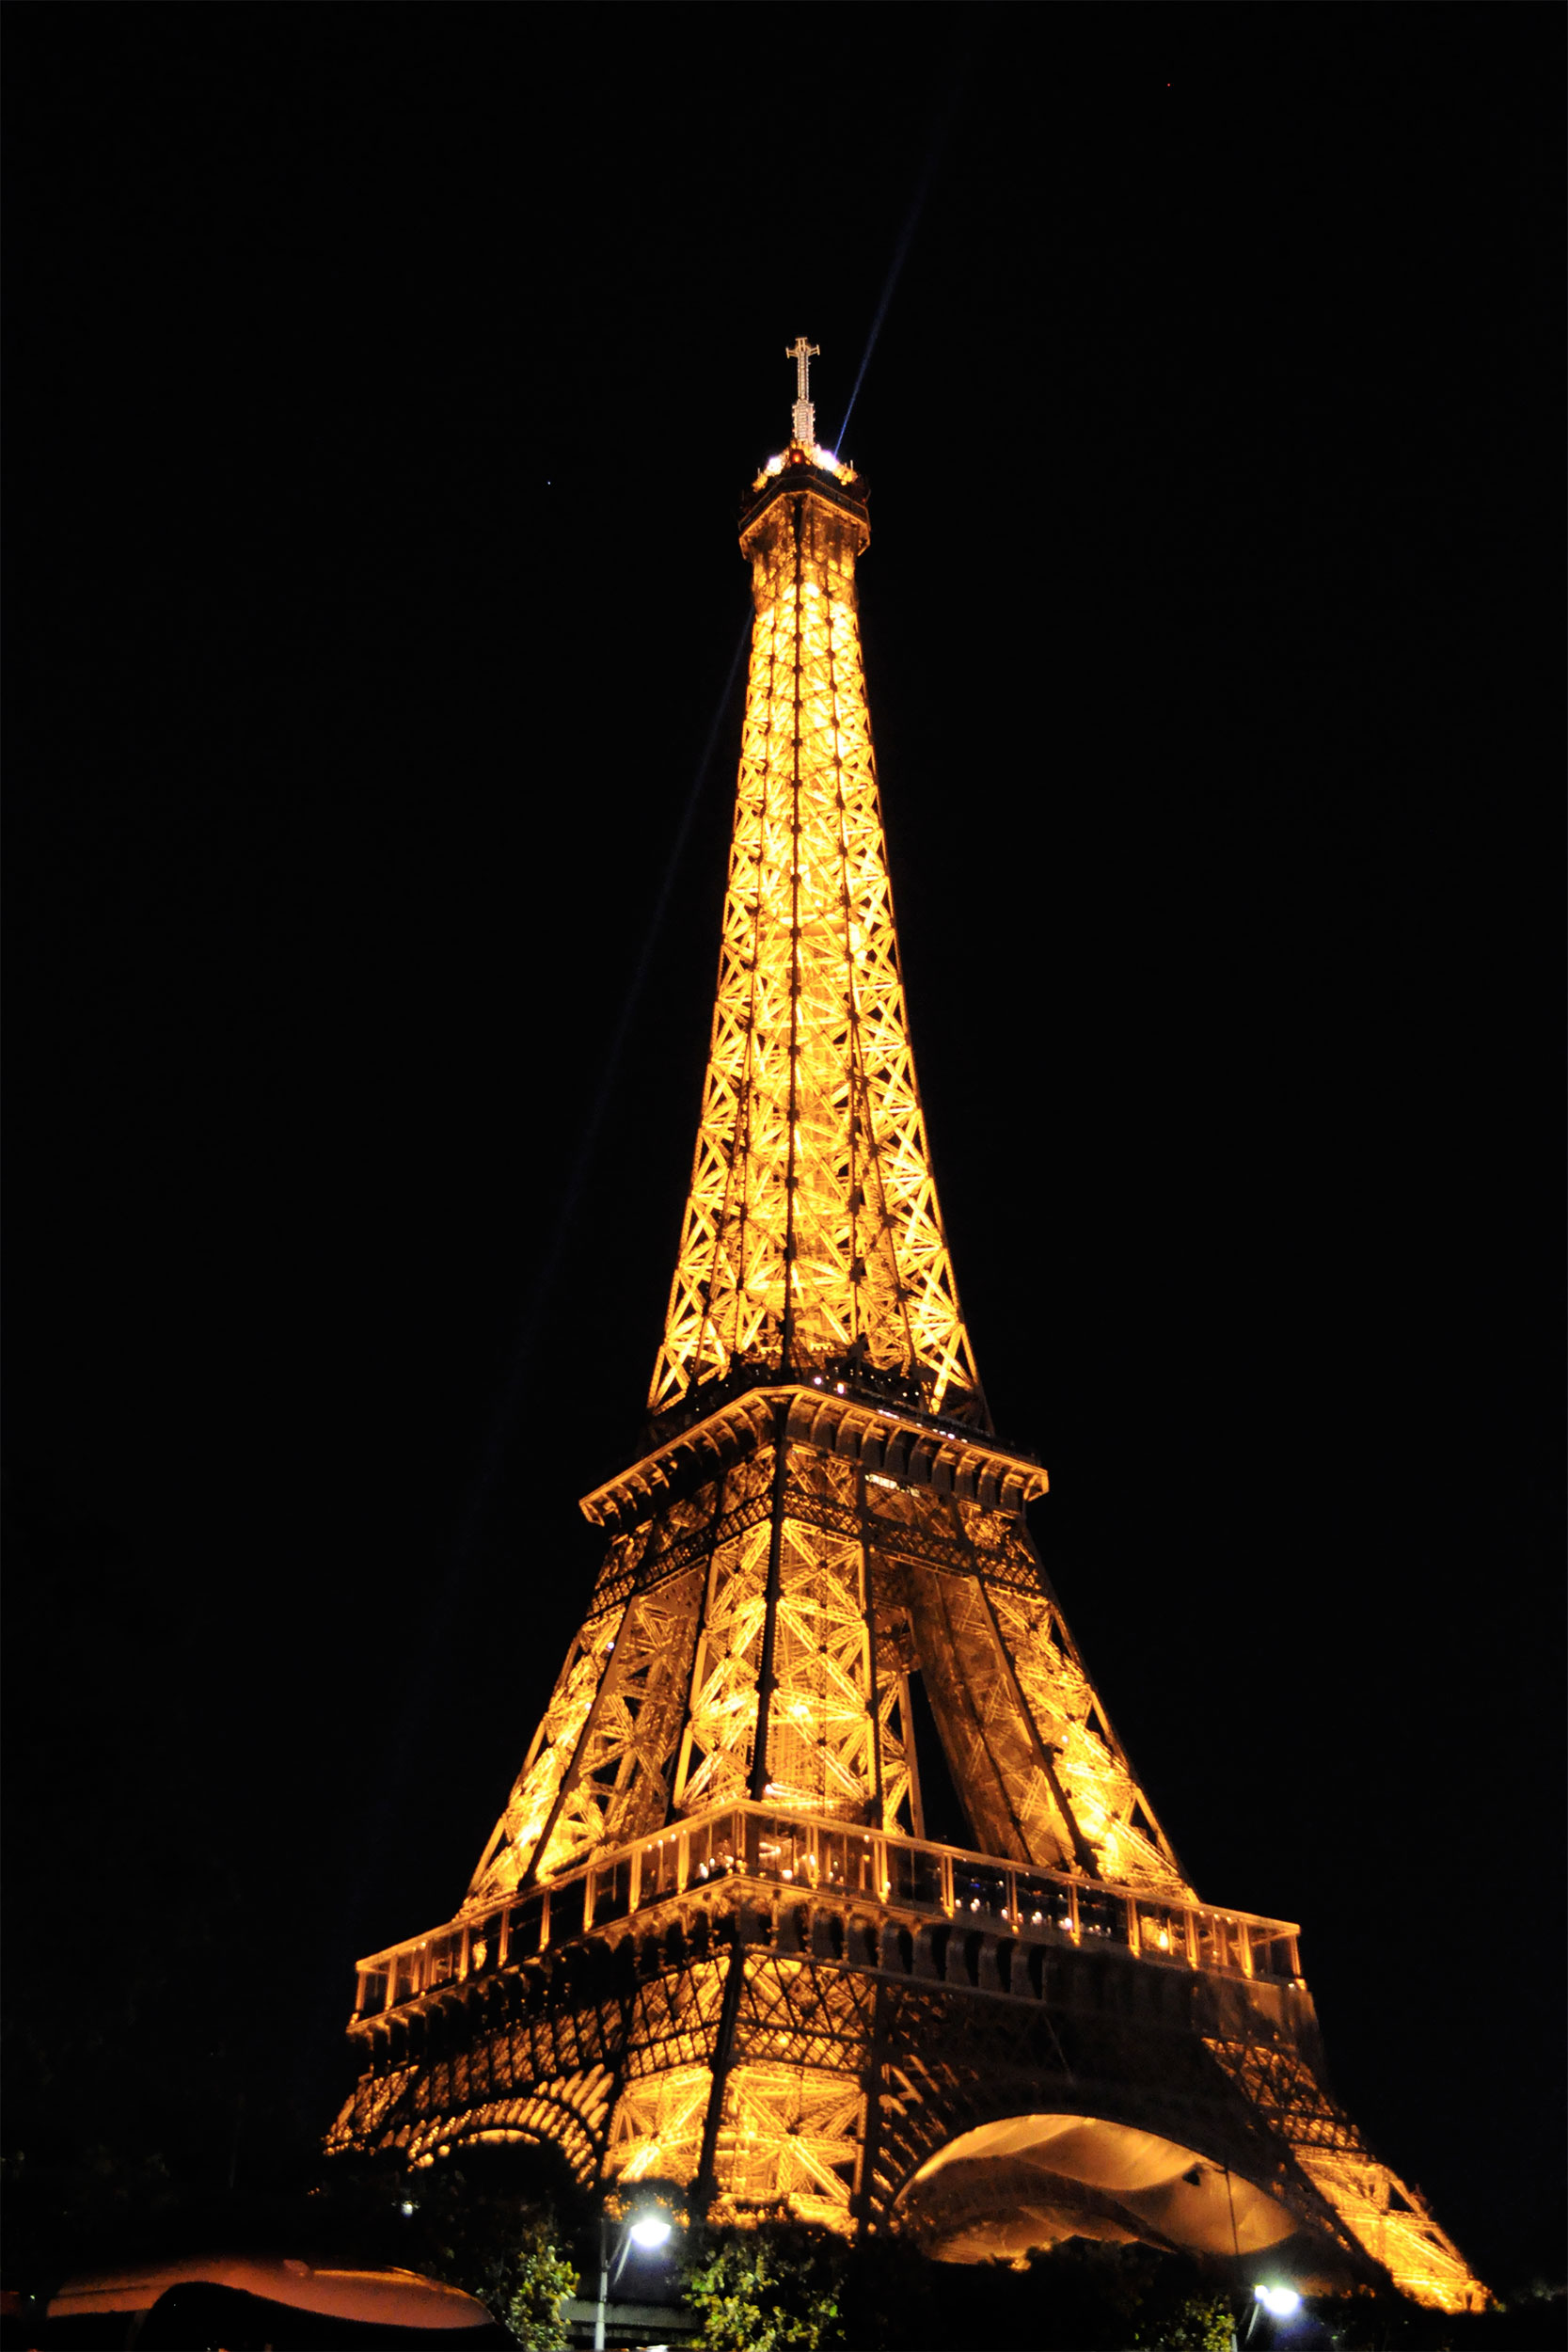 The Eiffel Tower, taken from near the Seine River